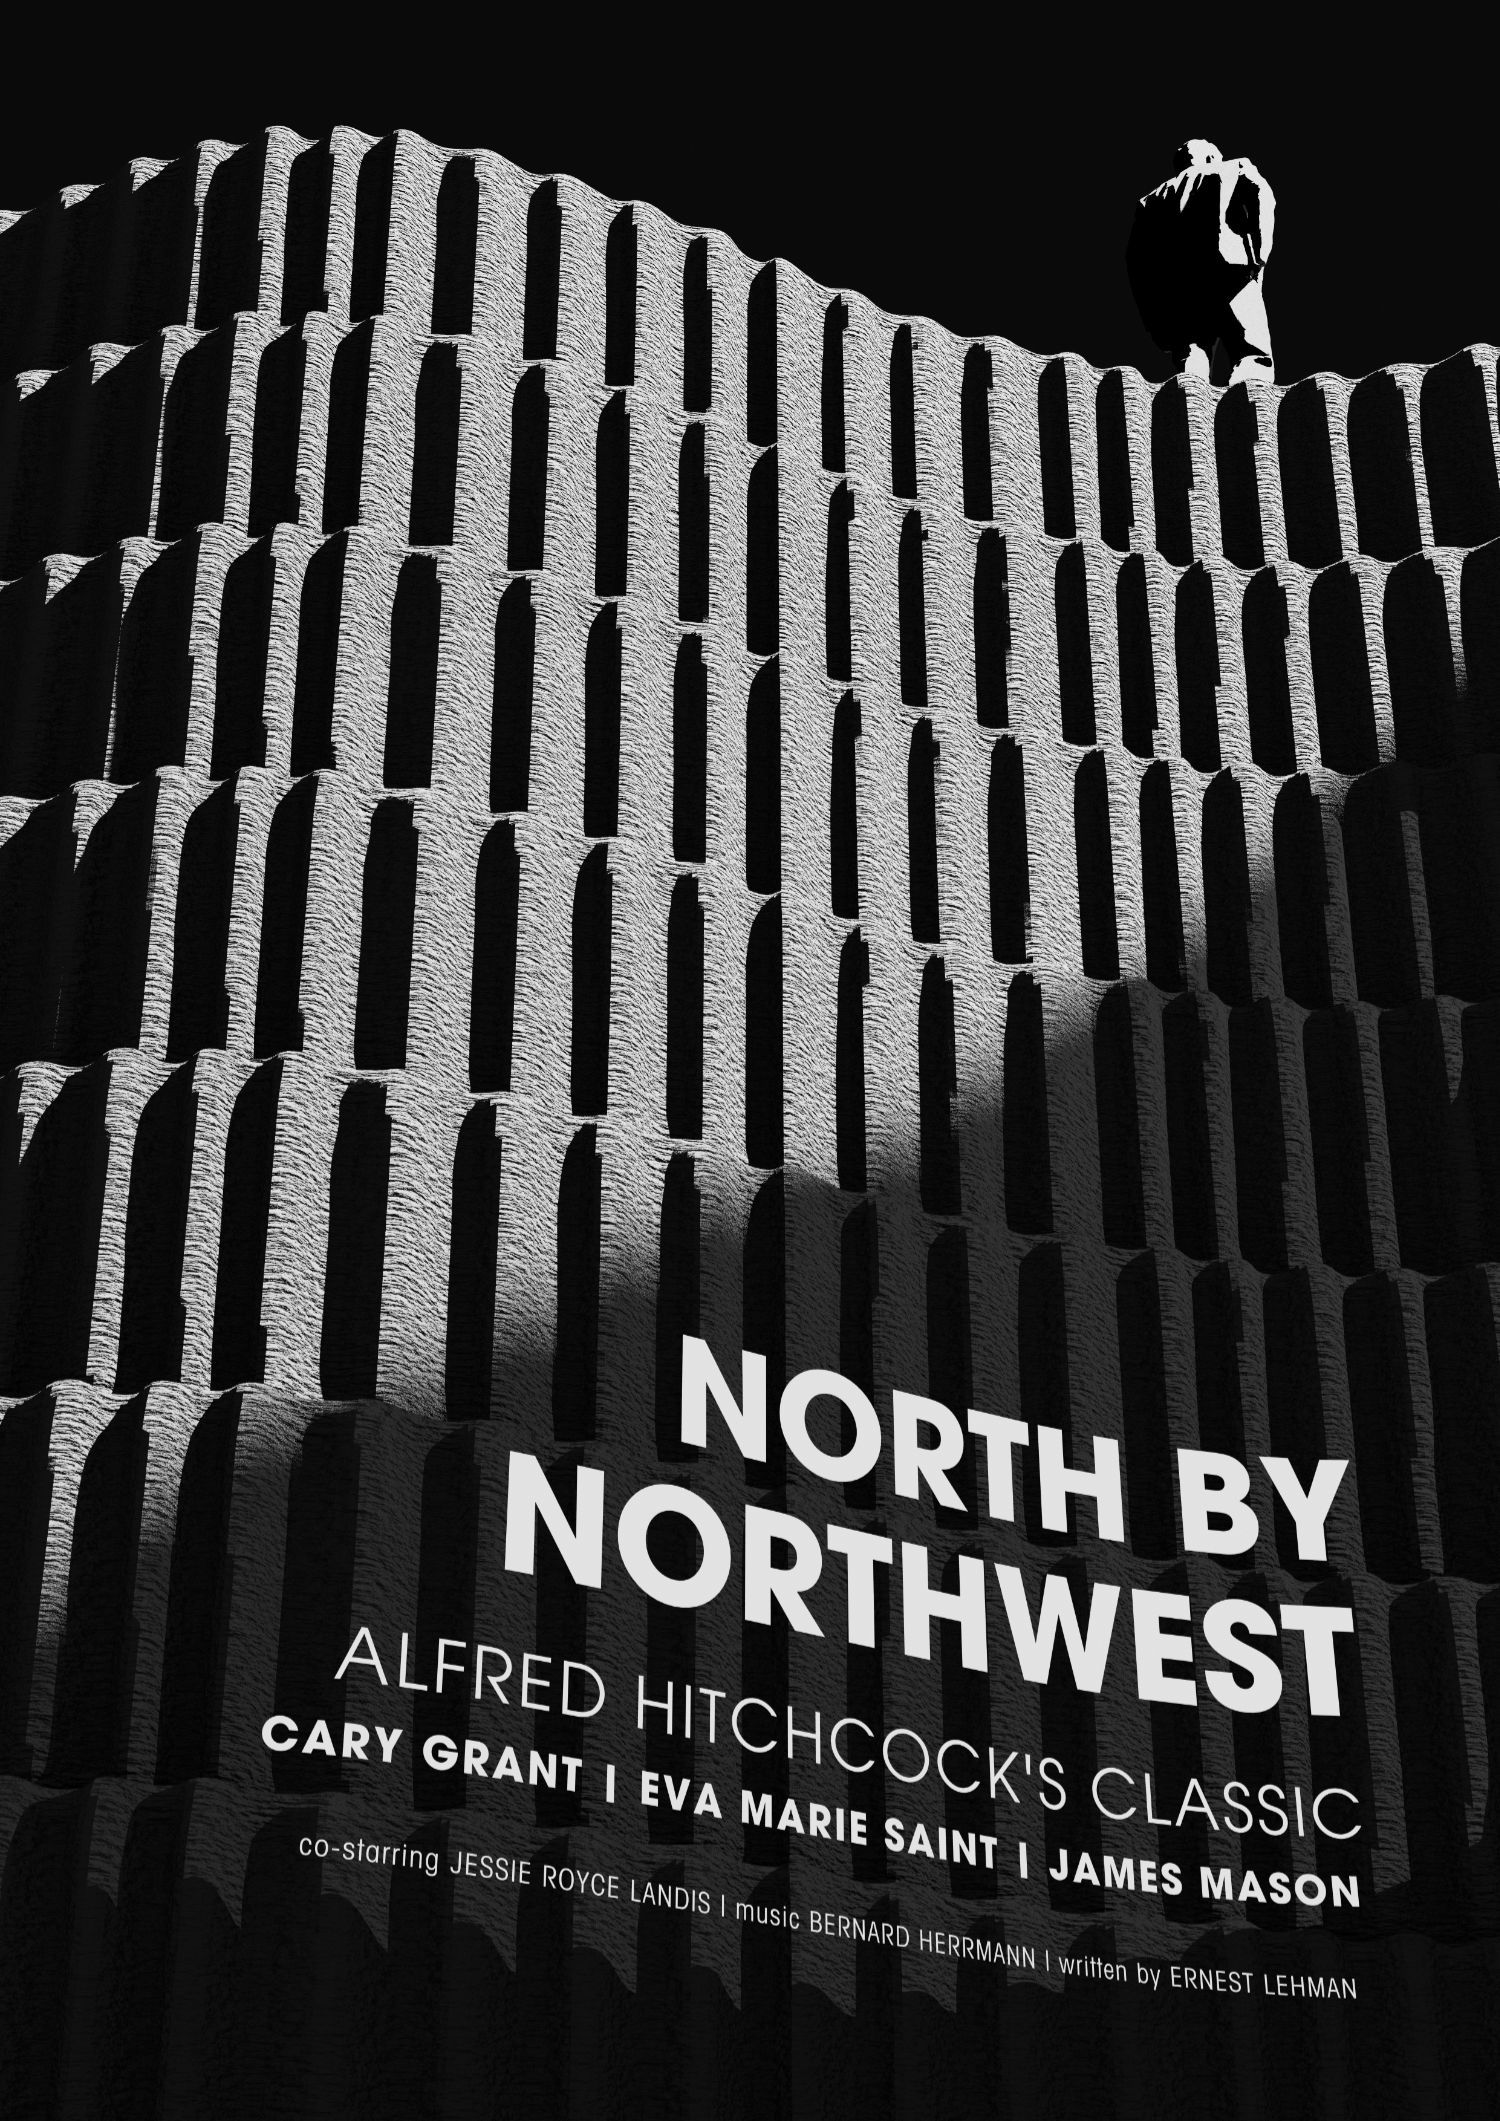 Hitchcock: North by Northwest plakátterv - 1 by Róth Barnabás